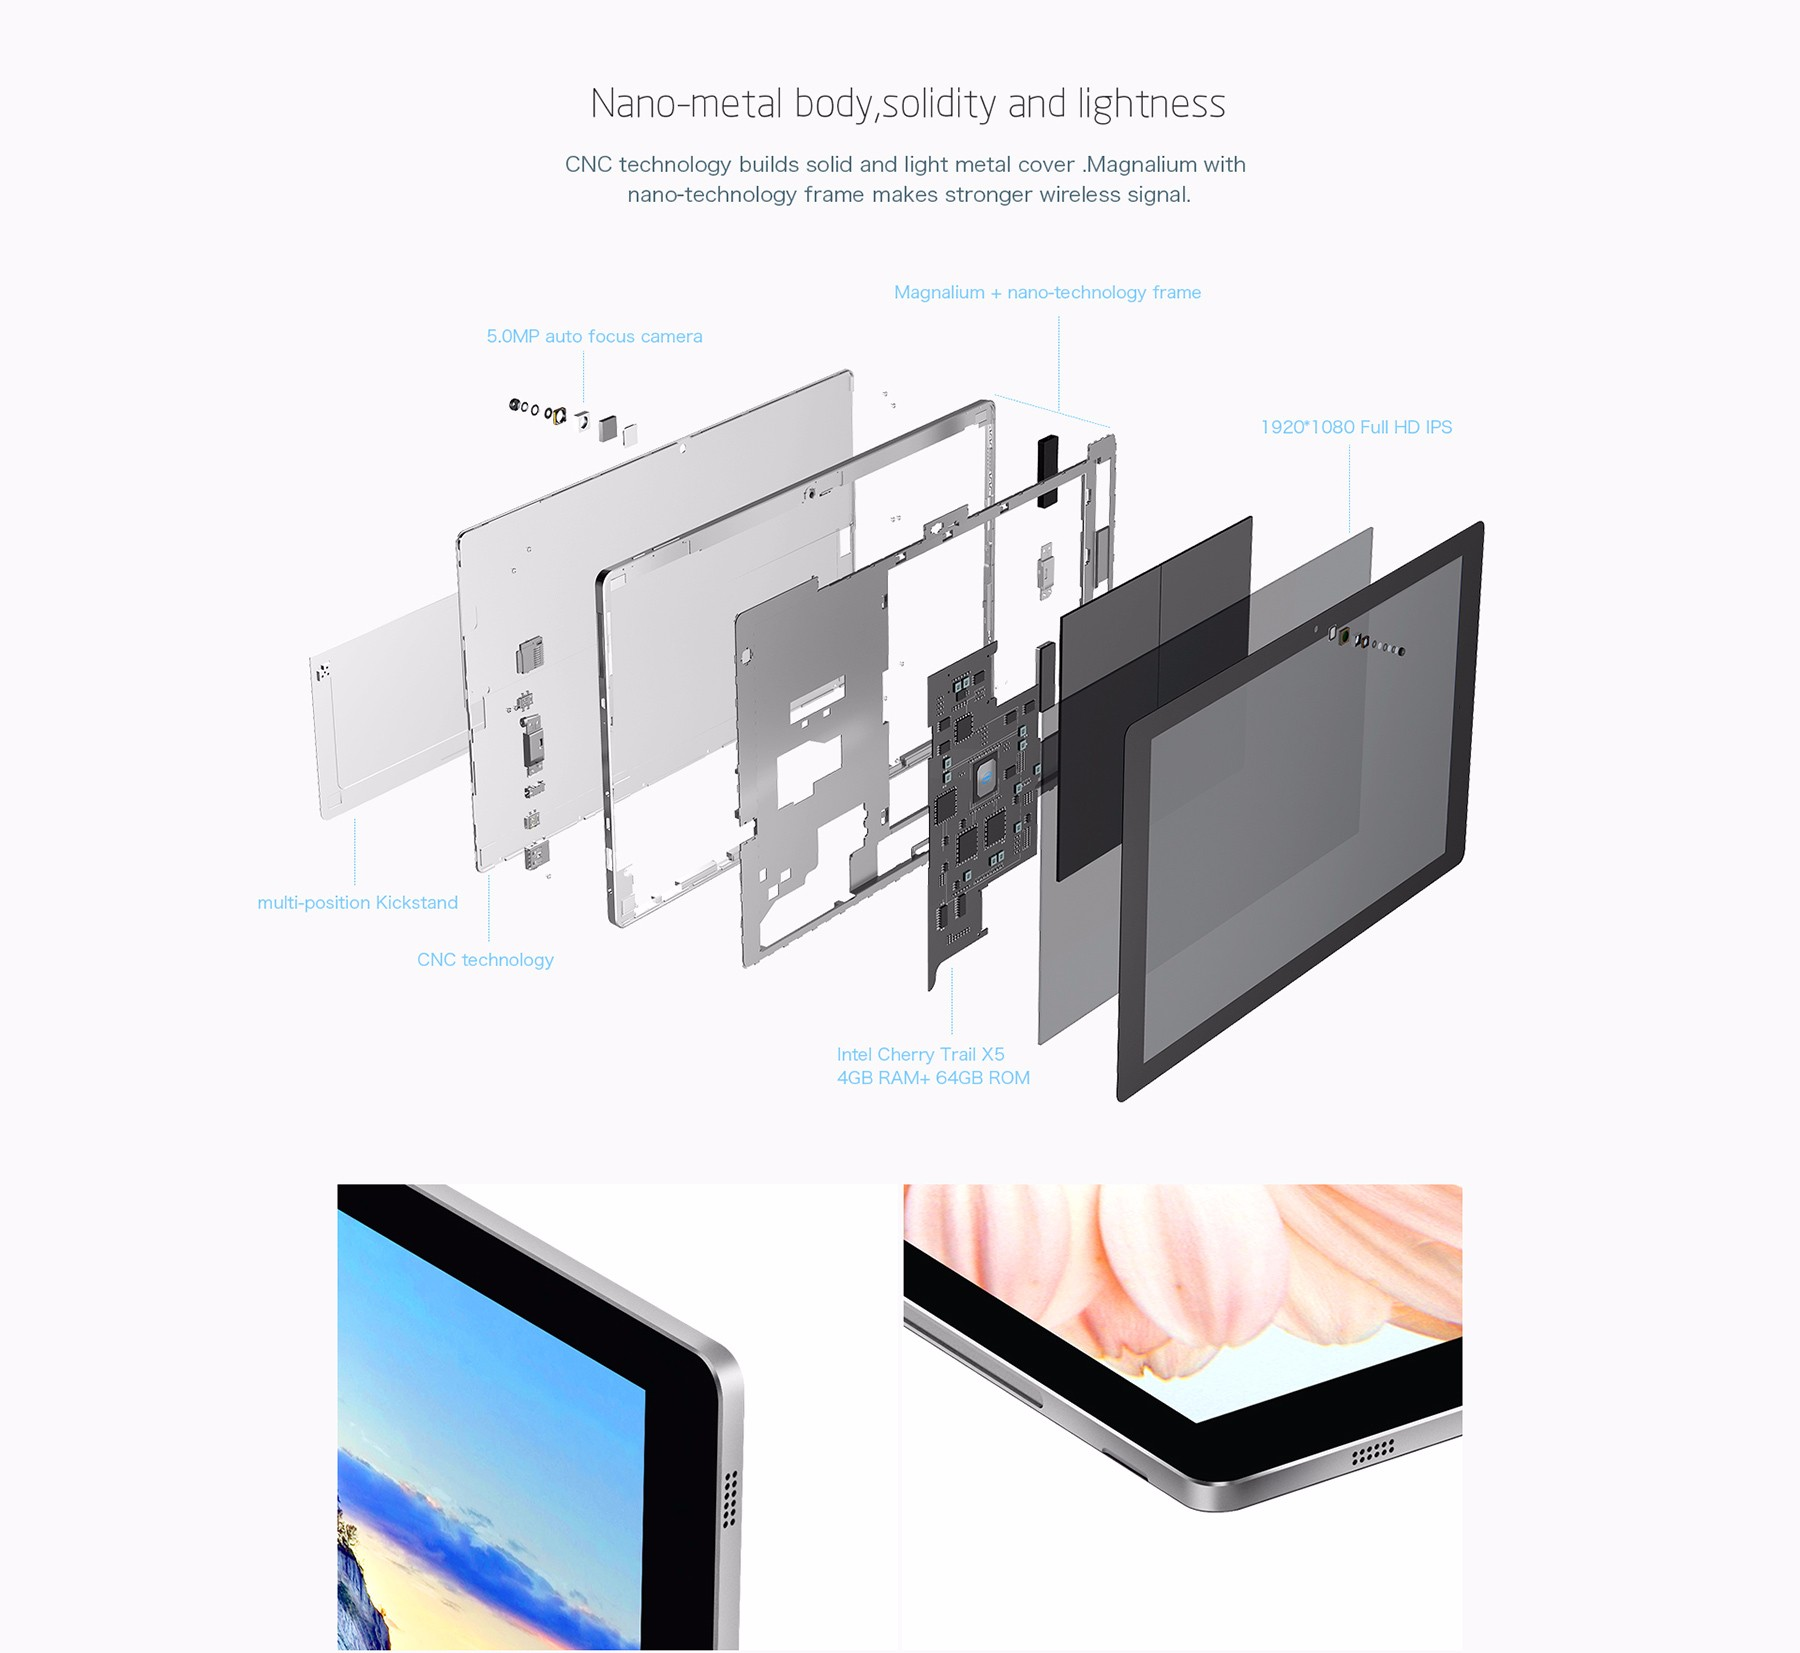 Teclast Tbook 16S 2 in 1 Tablet PC Windows 10 + Android 5.1 11.6 inch IPS Screen Intel Cherry Trail Z8300 64bit Quad Core 1.44GHz 4GB RAM 64GB ROM Cameras OTG